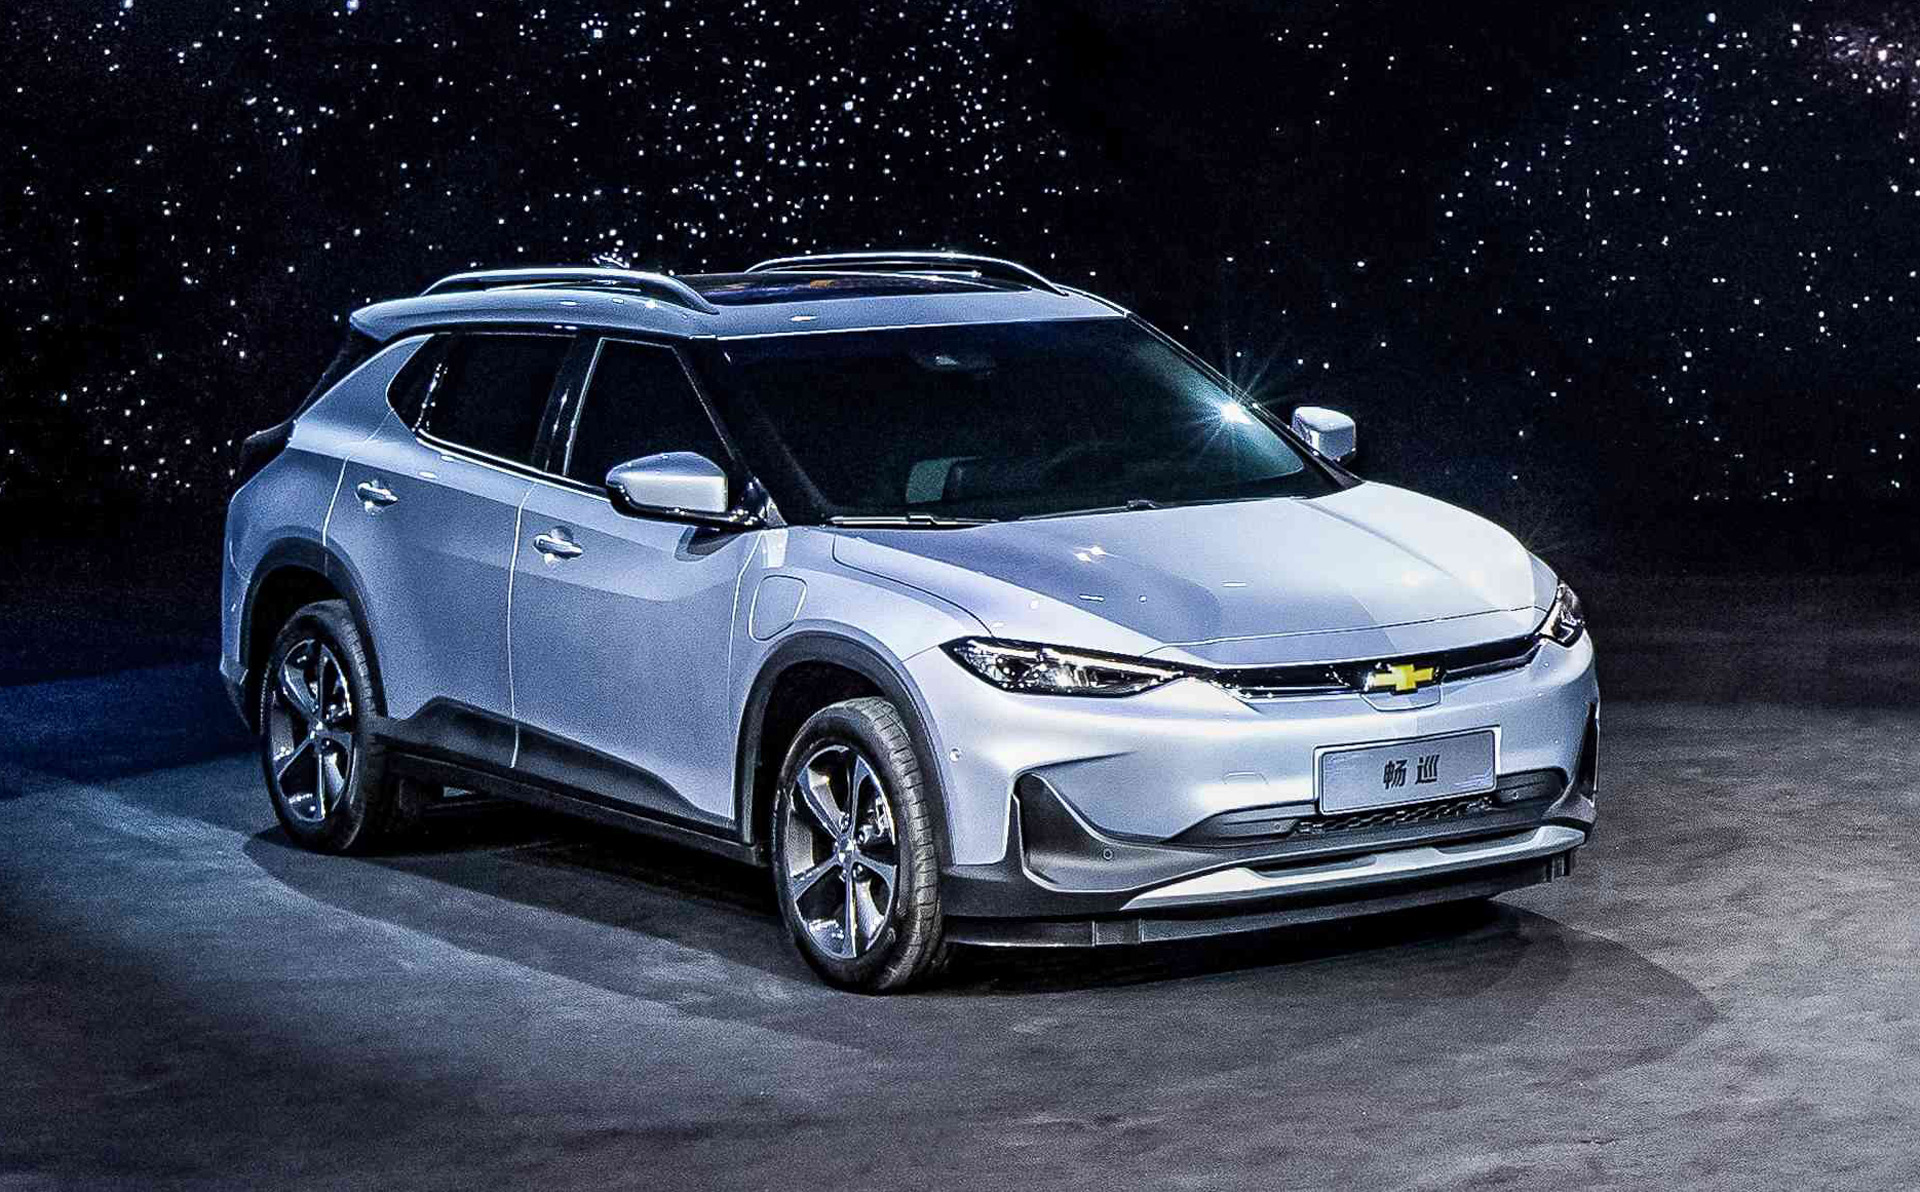 GM reveals the Chevy Menlo electric car to China